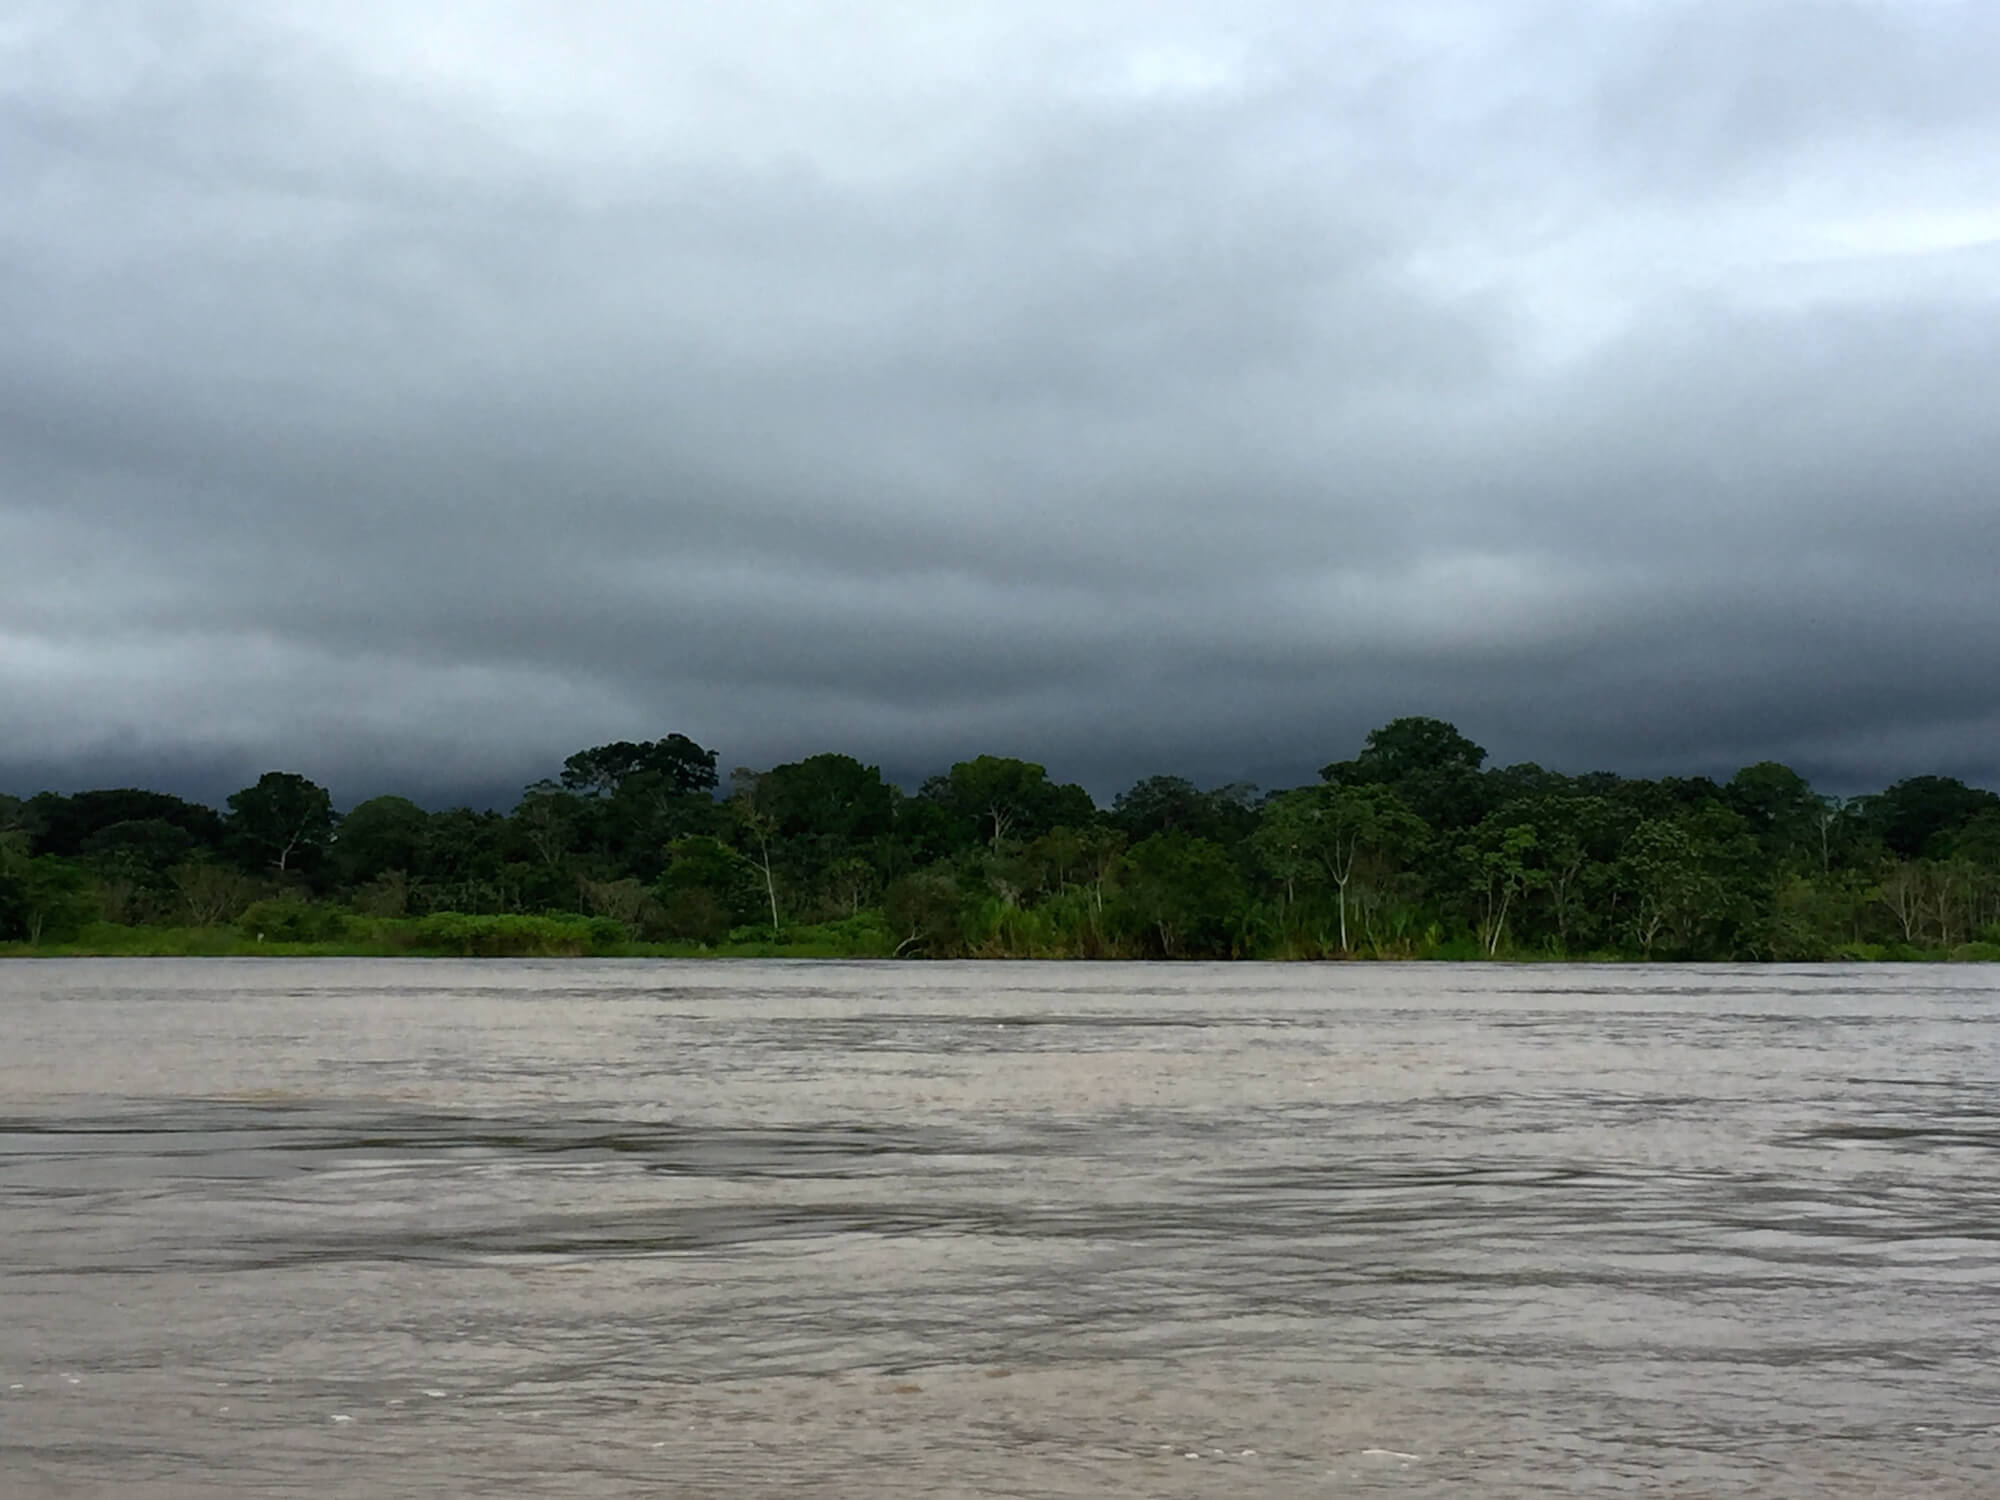 The Amazon River is wide and deep, allowing large cargo ships to sail far upriver